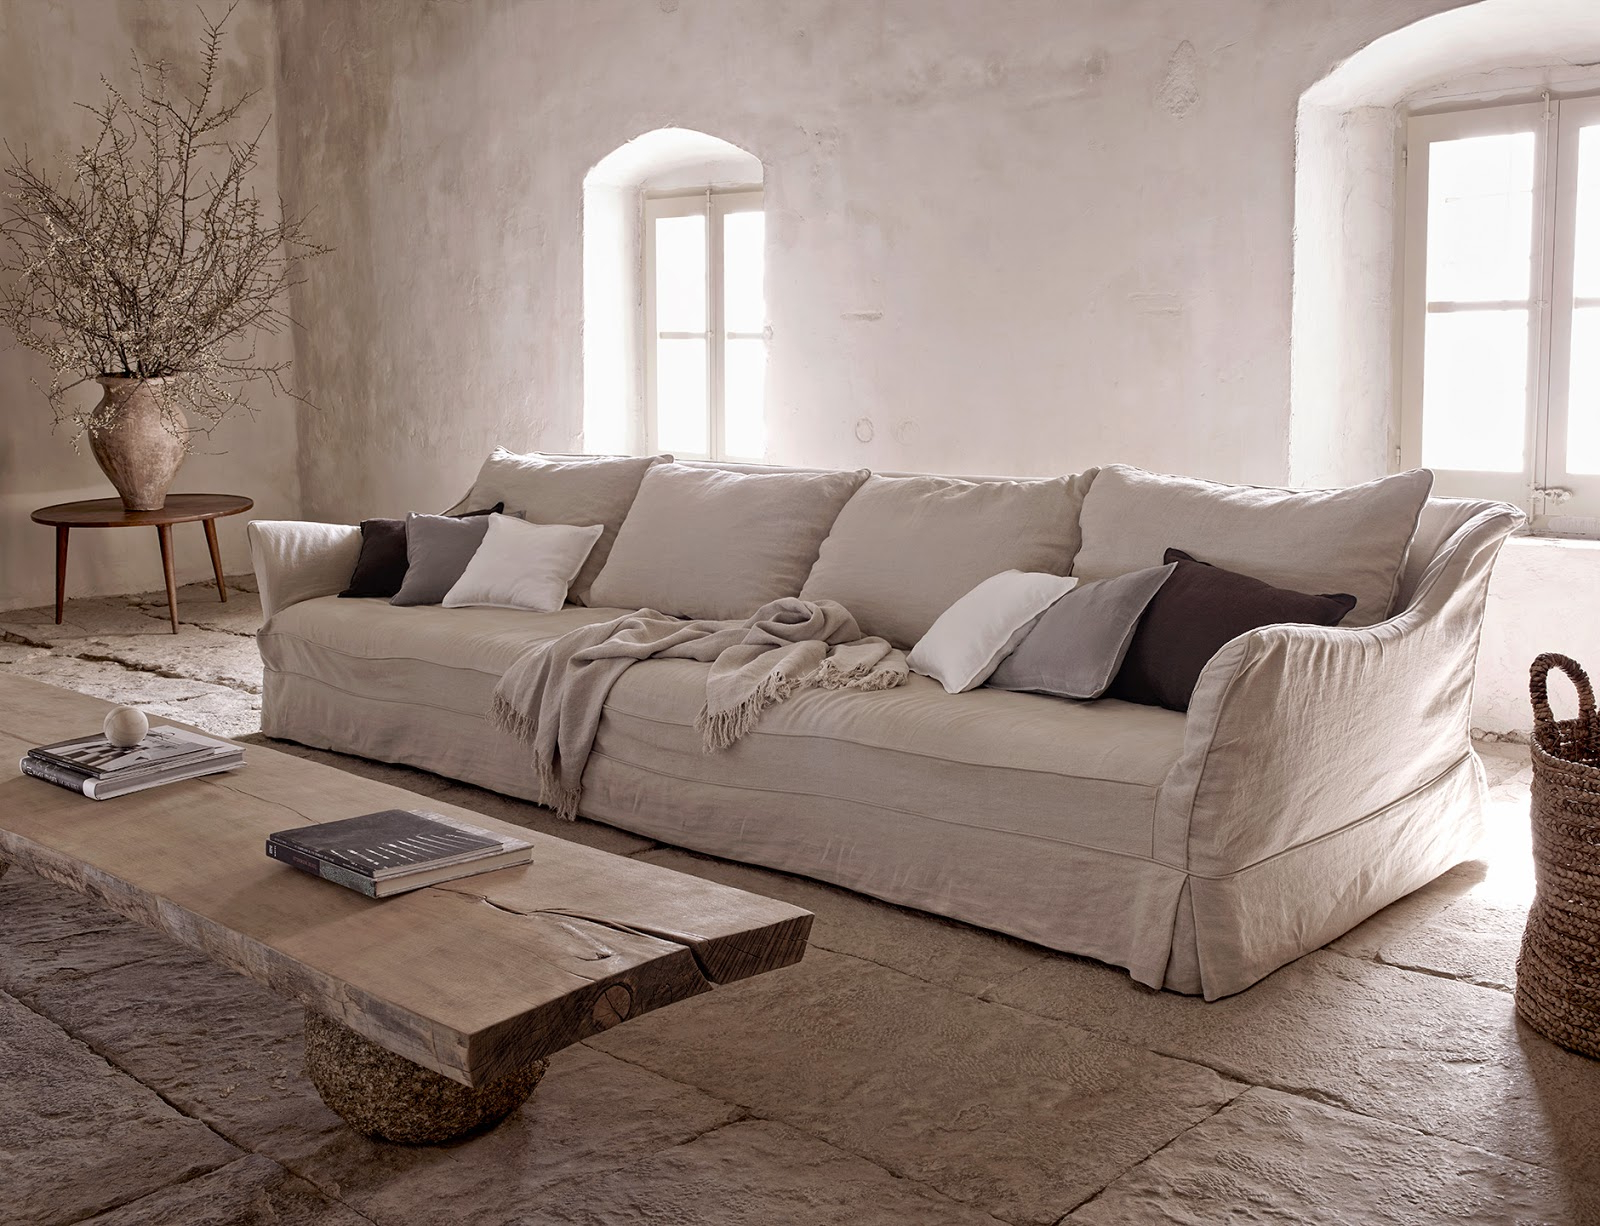 Mantas De sofa Zara Home E9dx Milano Zara Home It S Monday but It S Ok